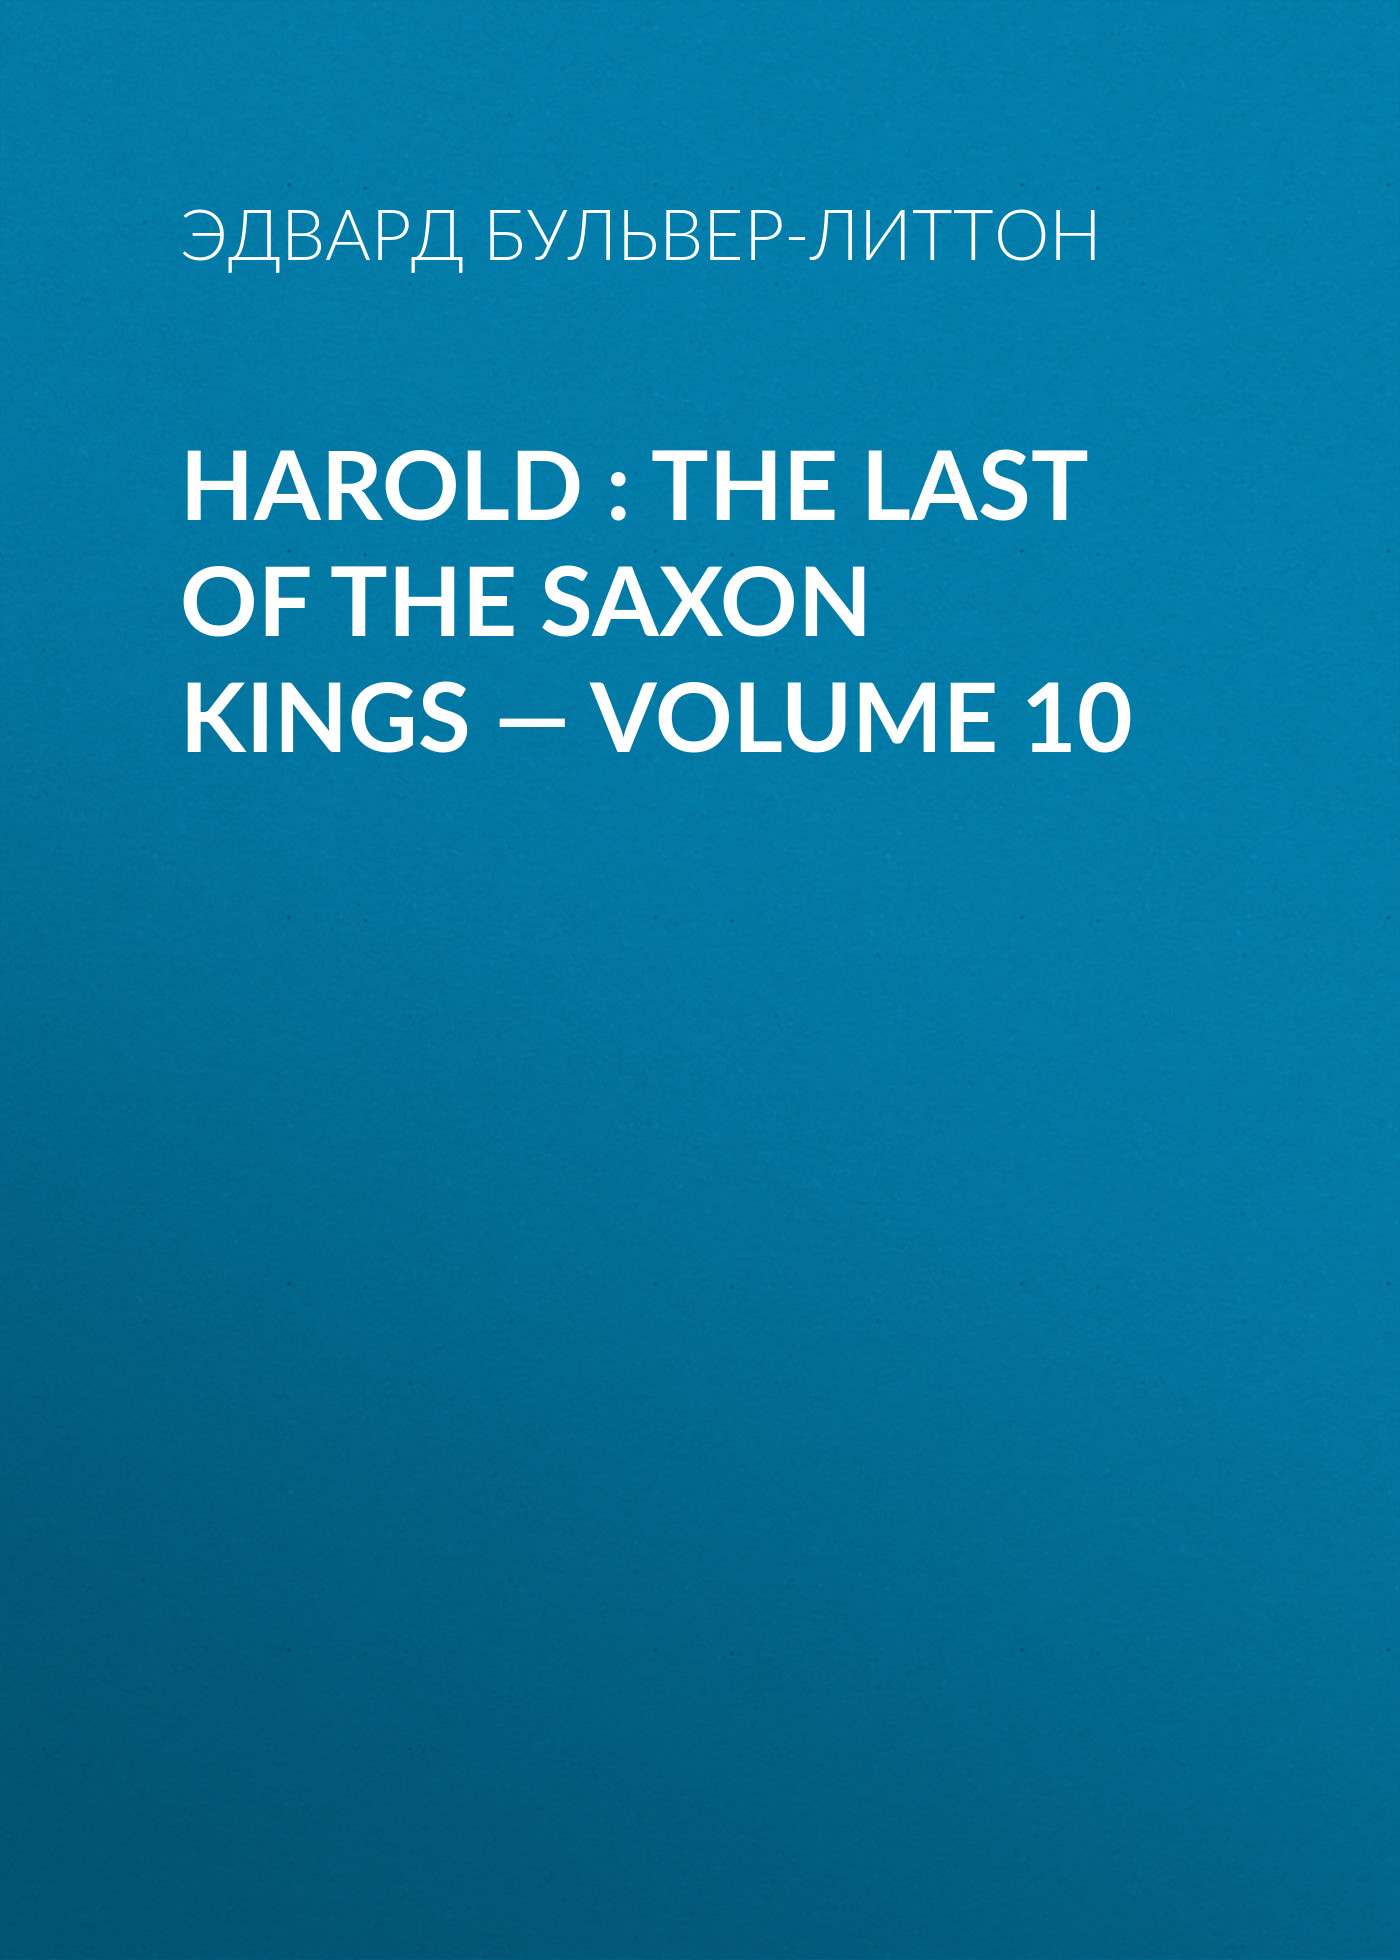 Эдвард Бульвер-Литтон Harold : the Last of the Saxon Kings — Volume 10 эдвард бульвер литтон harold the last of the saxon kings volume 06